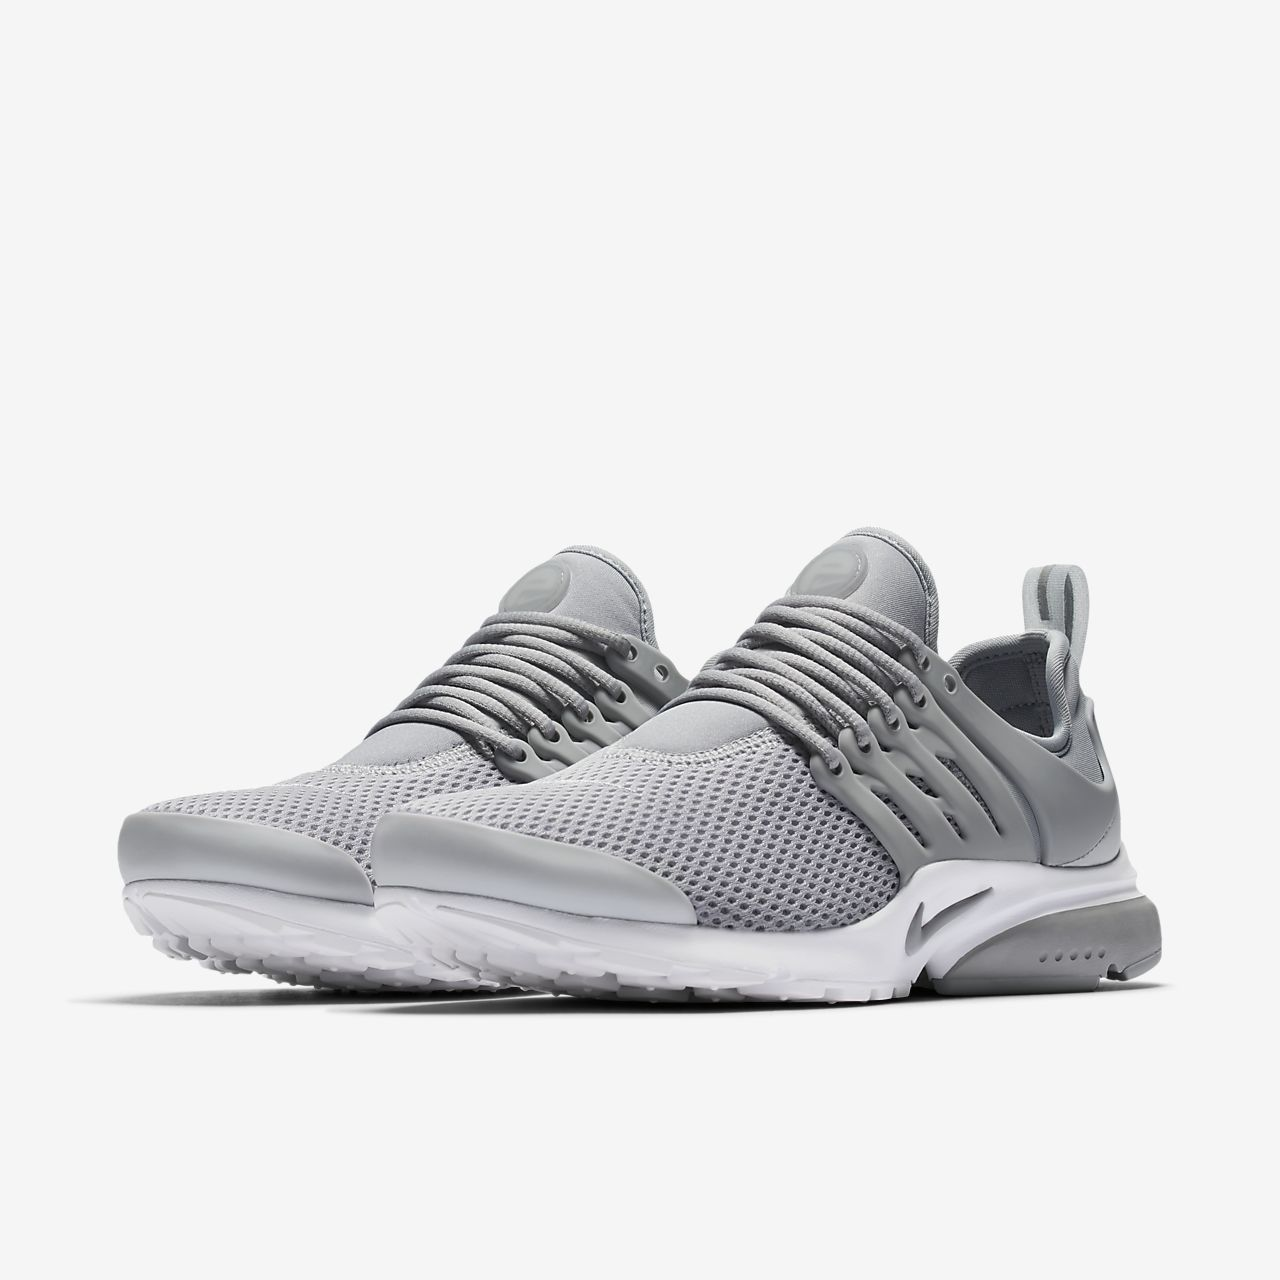 Nike Air Presto Women s Shoe - gray -  120 - Nike.com  41ff4acc9a